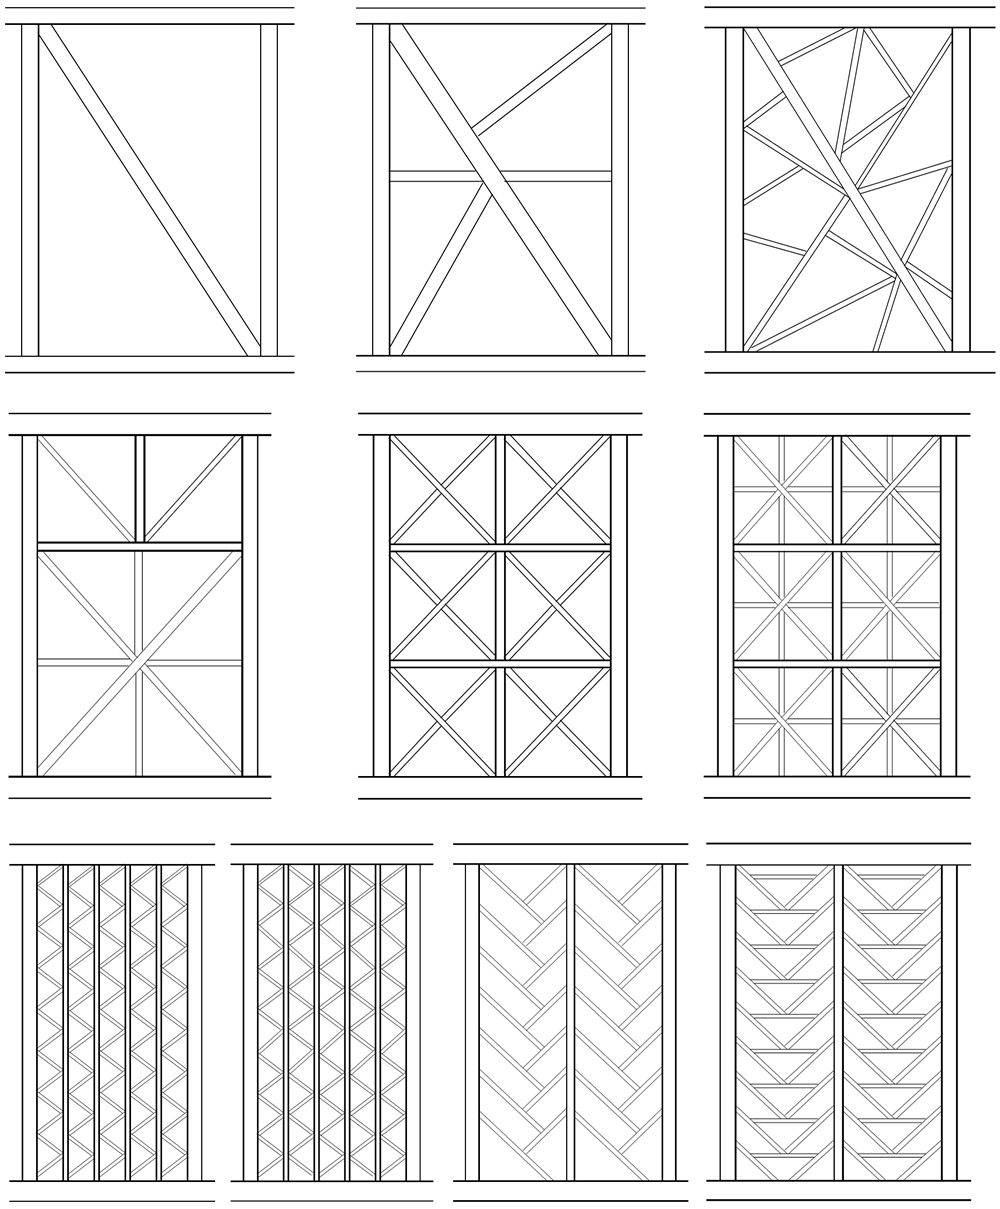 Typical bracing patterns being used post 2005 Pakistan earthquake: (top) braced frames with increasing levels of random subdivisions, (middle) frames with intermediate columns and regular cross bracing with increasing levels of refinement going from left